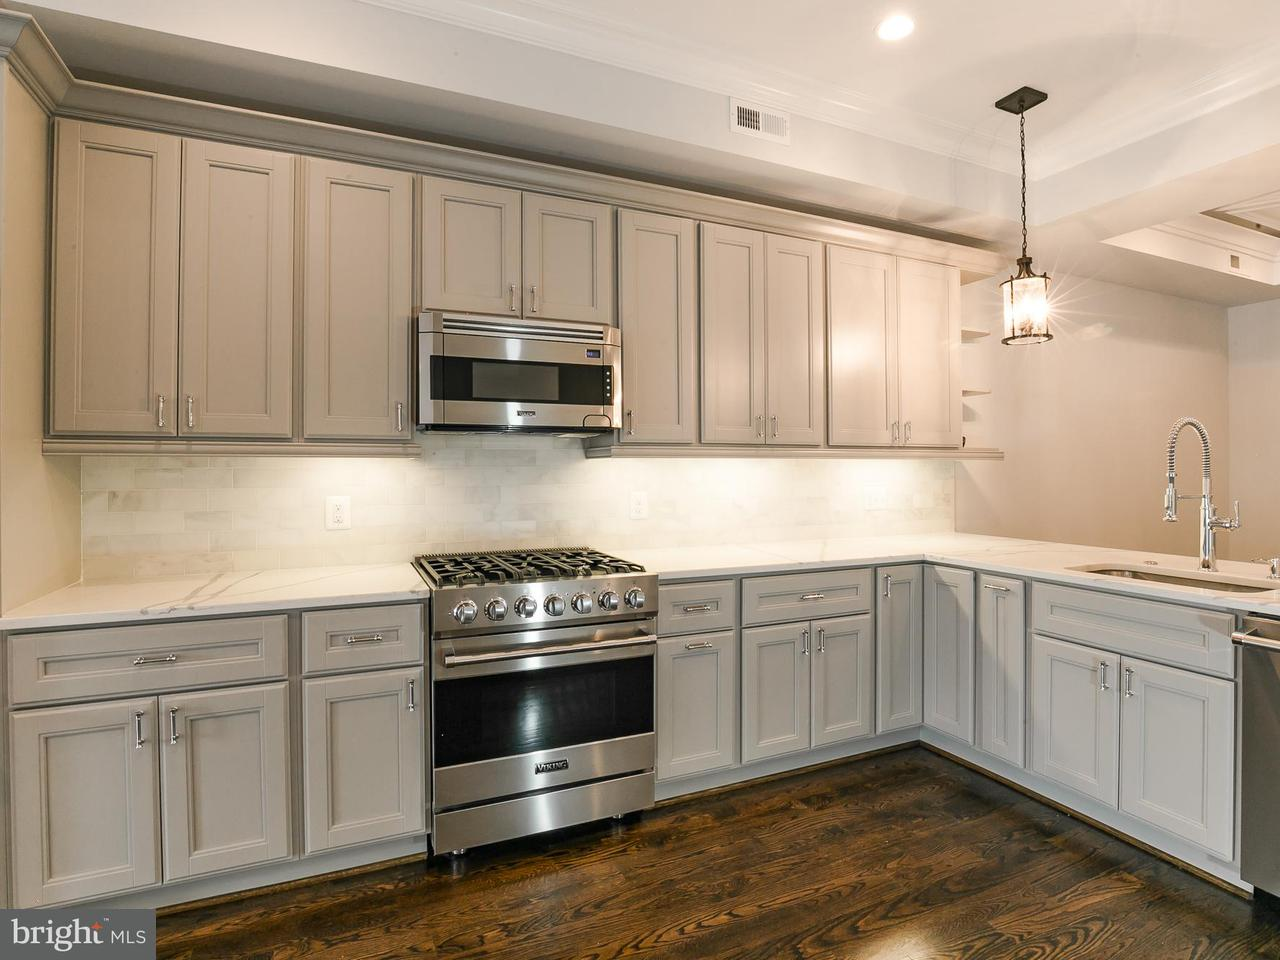 Additional photo for property listing at 1717 Euclid St Nw #4 1717 Euclid St Nw #4 Washington, District Of Columbia 20009 United States